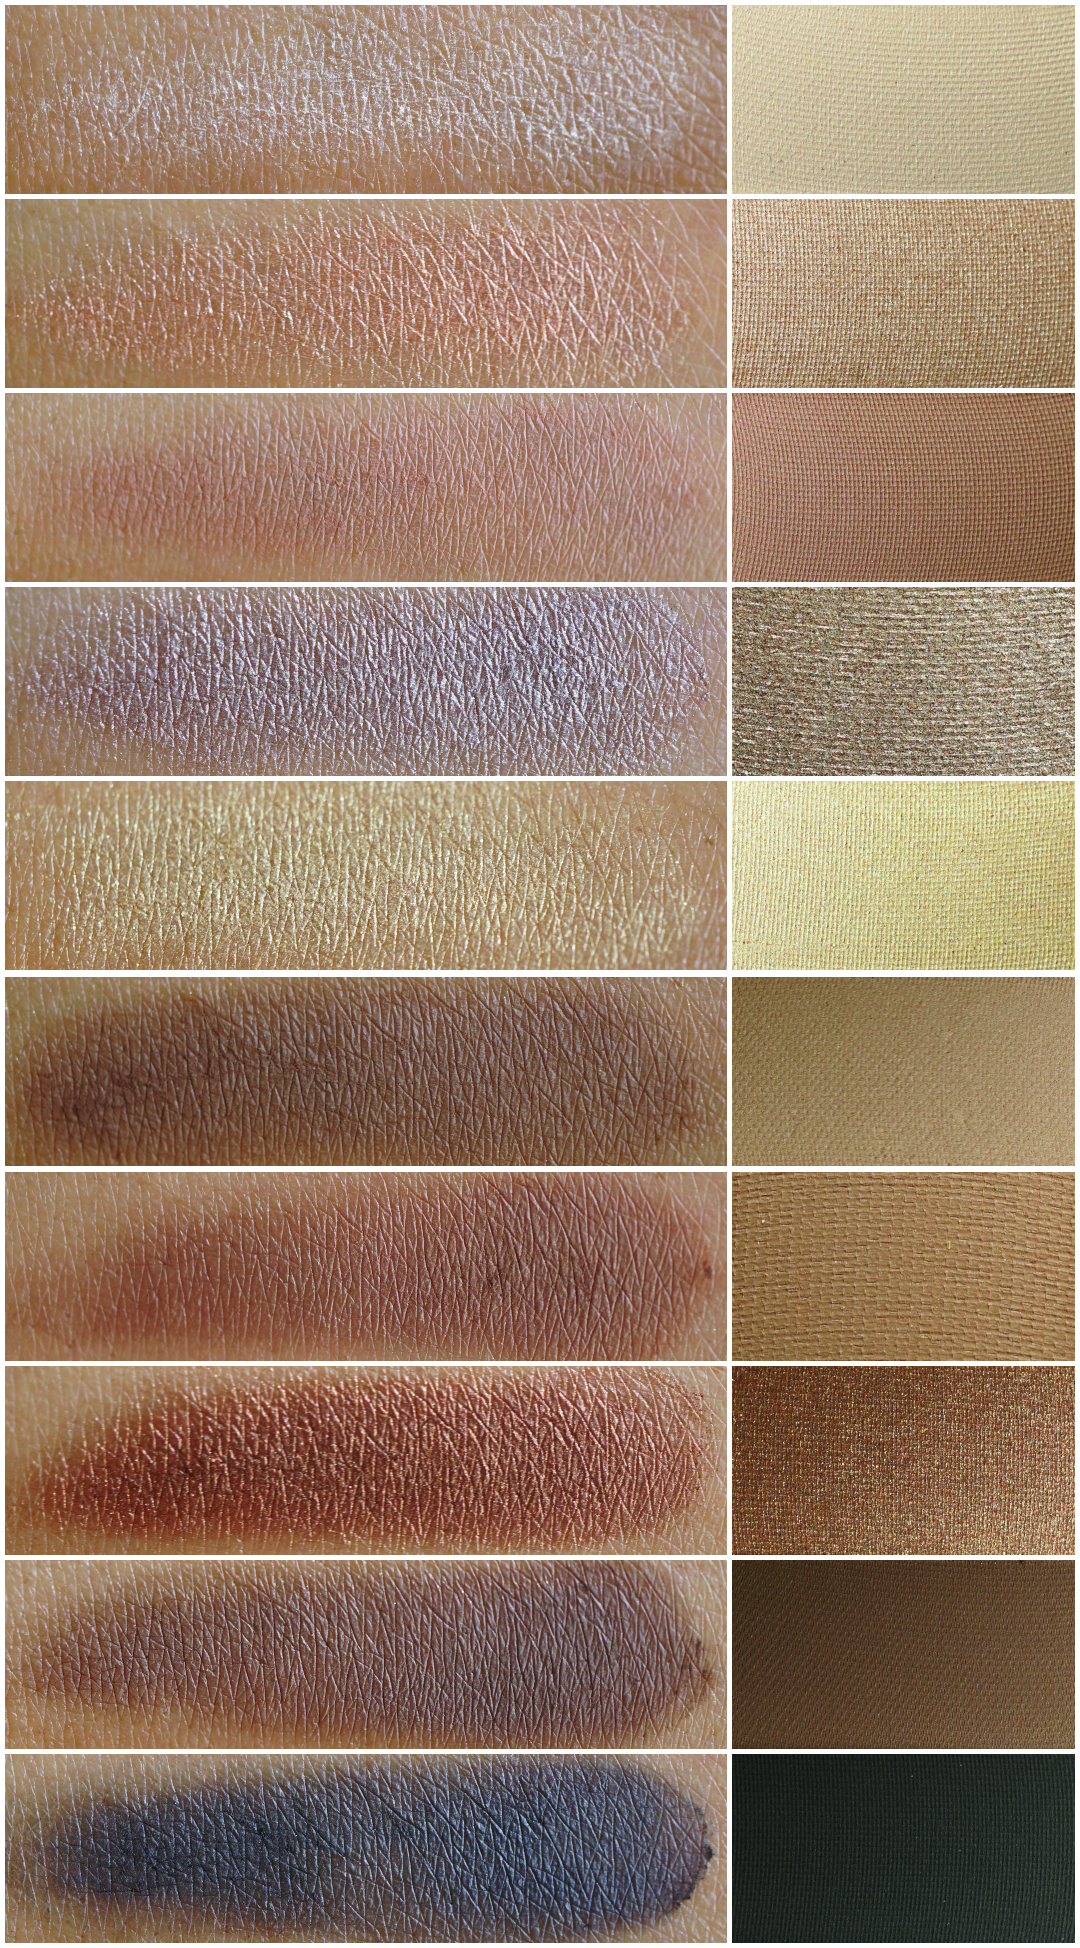 L'oreal-la-palette-nude-swatches-look-review (1)